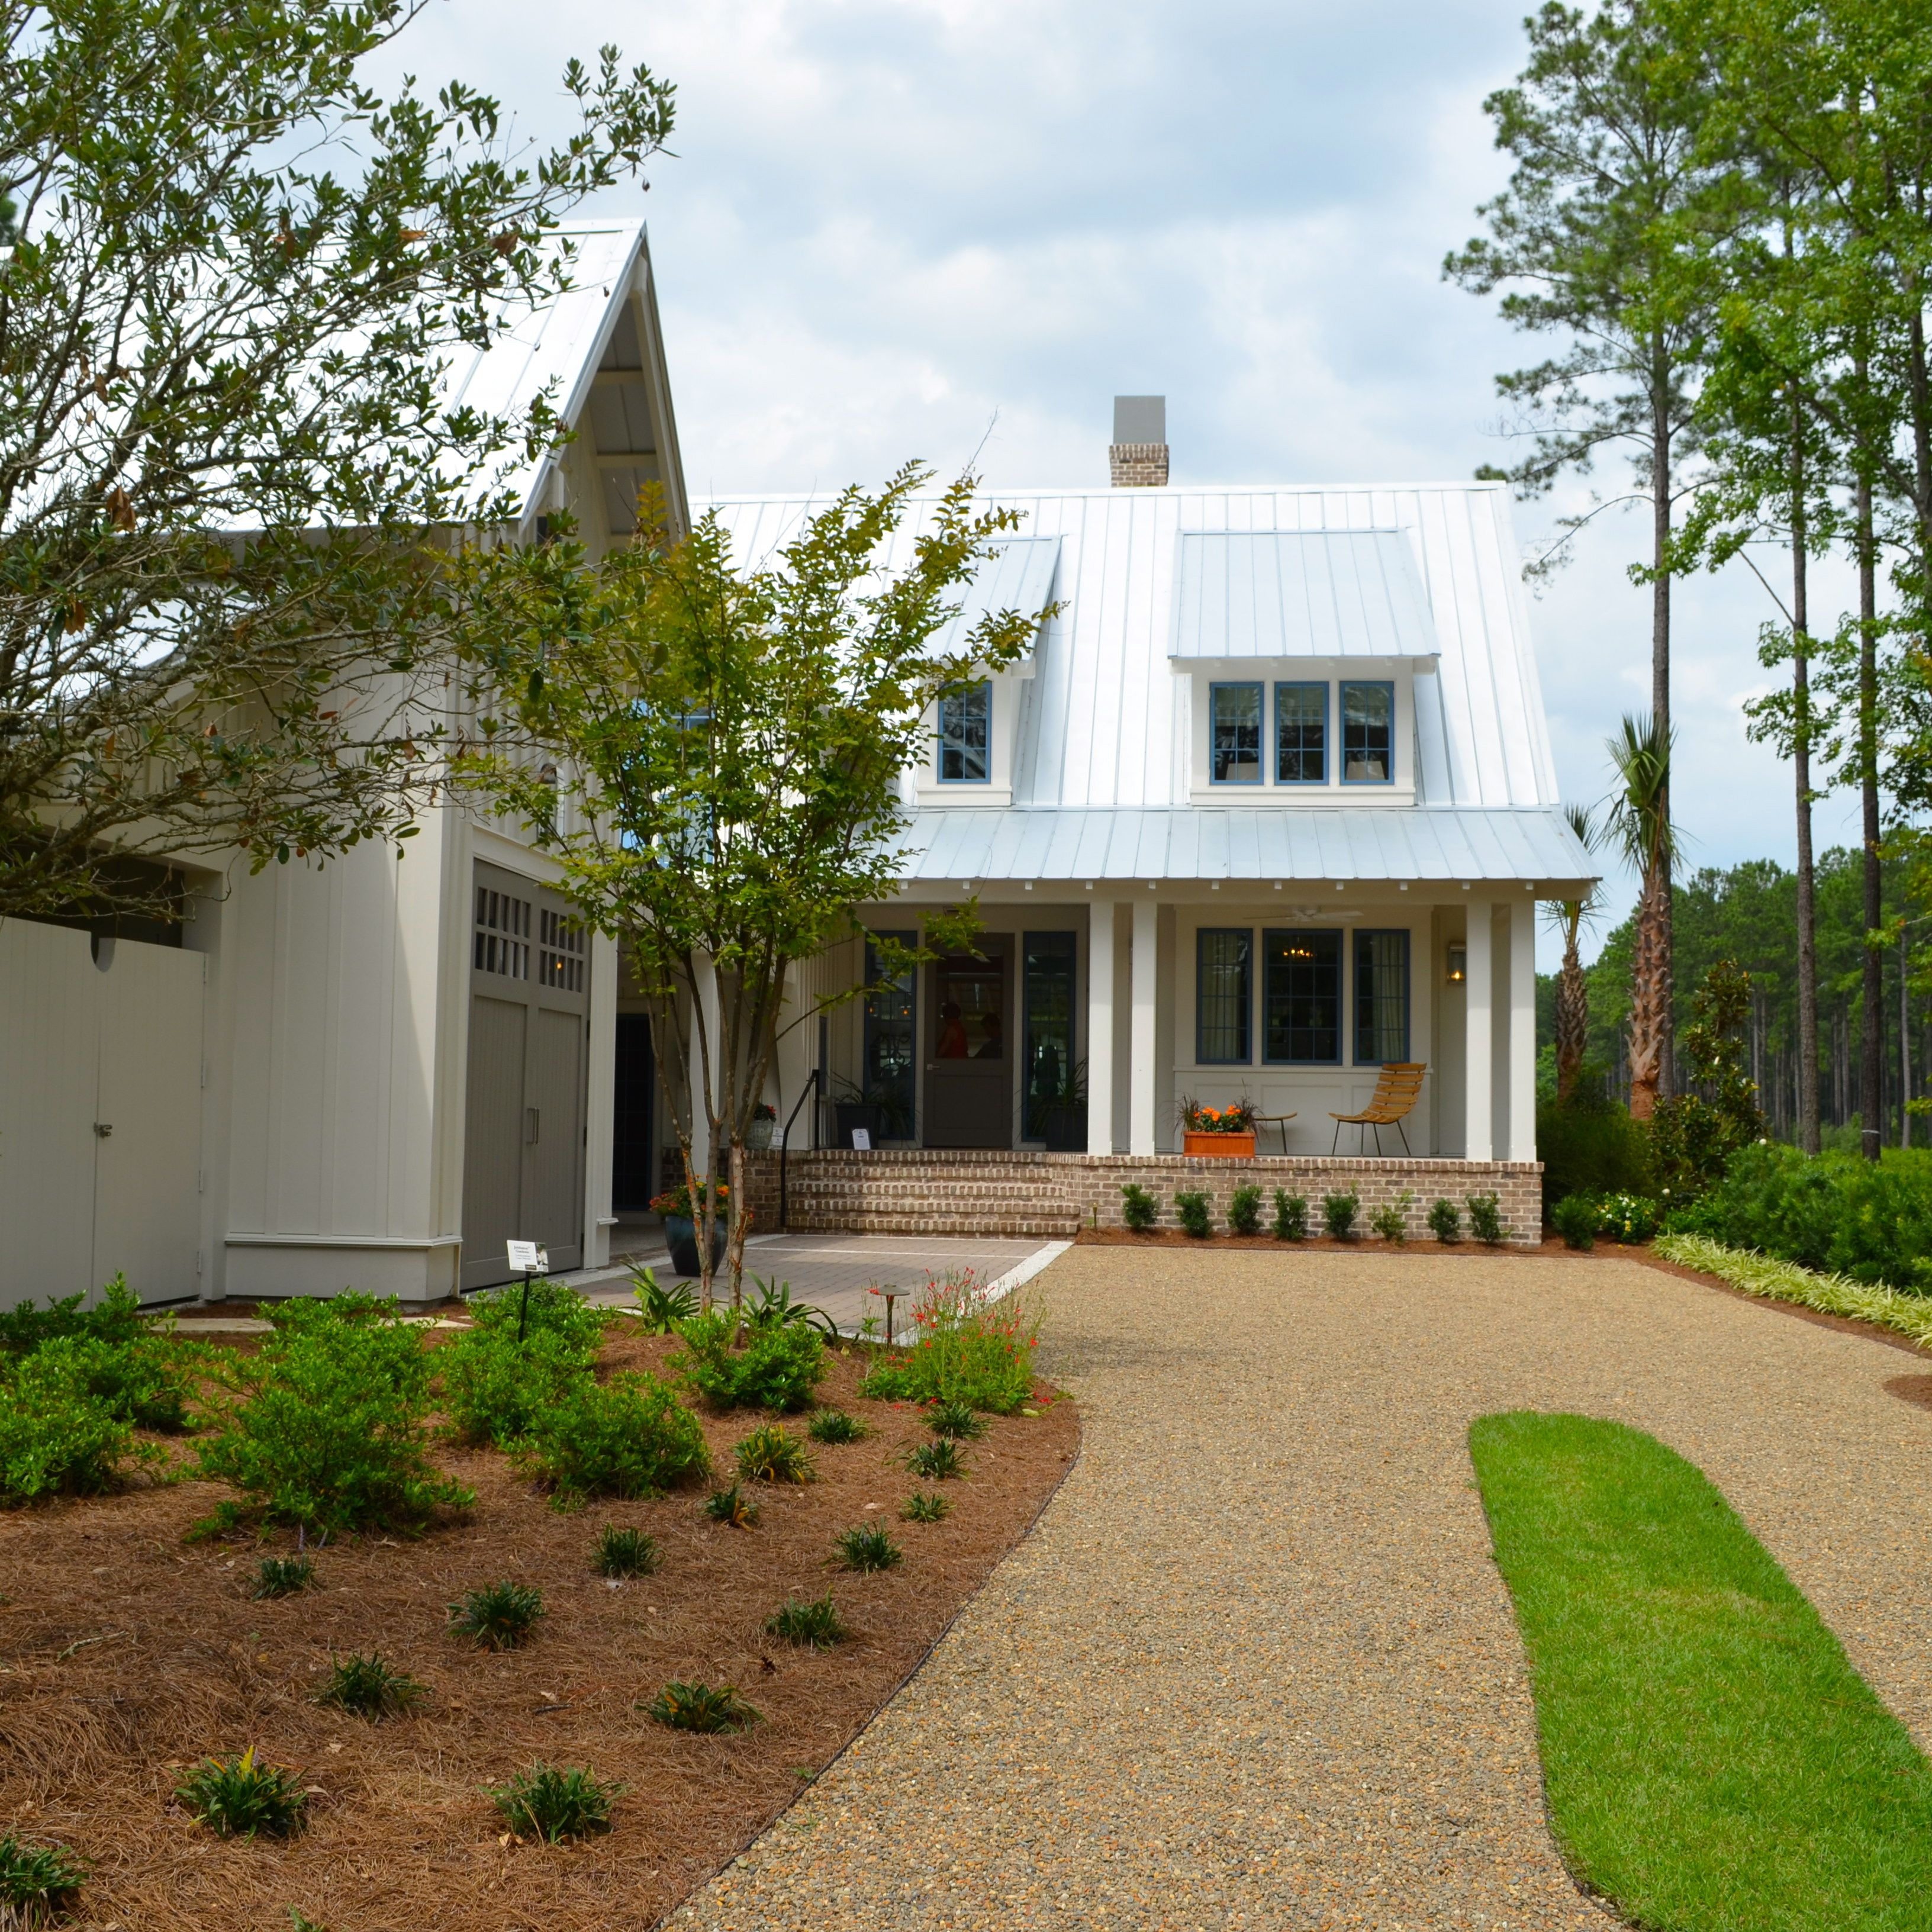 Today Iu0027m Taking You On A Tour Of The 2014 Southern Living Idea House.  Located In Palmetto Bluff, SC, It Is The Quintessential Lowcountry Home.